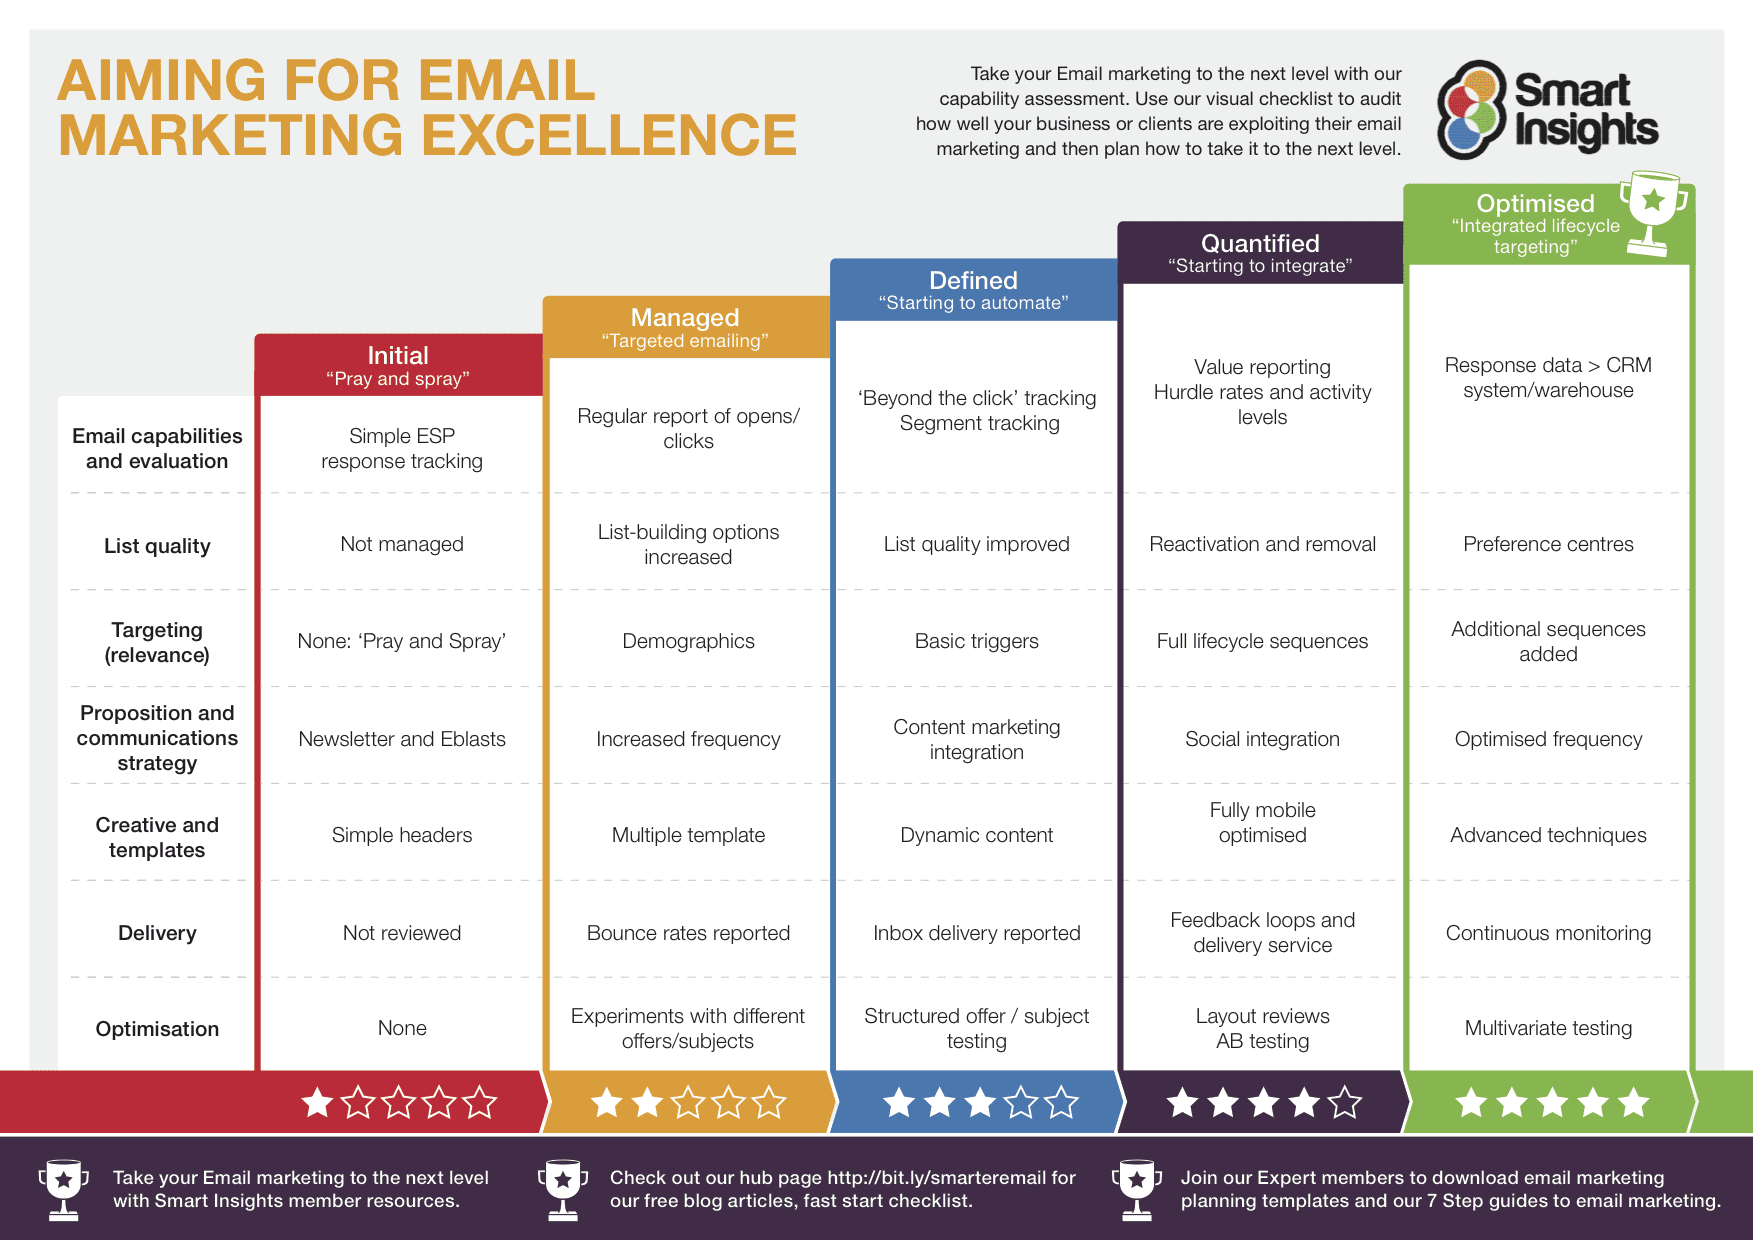 promotional strategy template - 24 email marketing tips to improve ctr smart insights